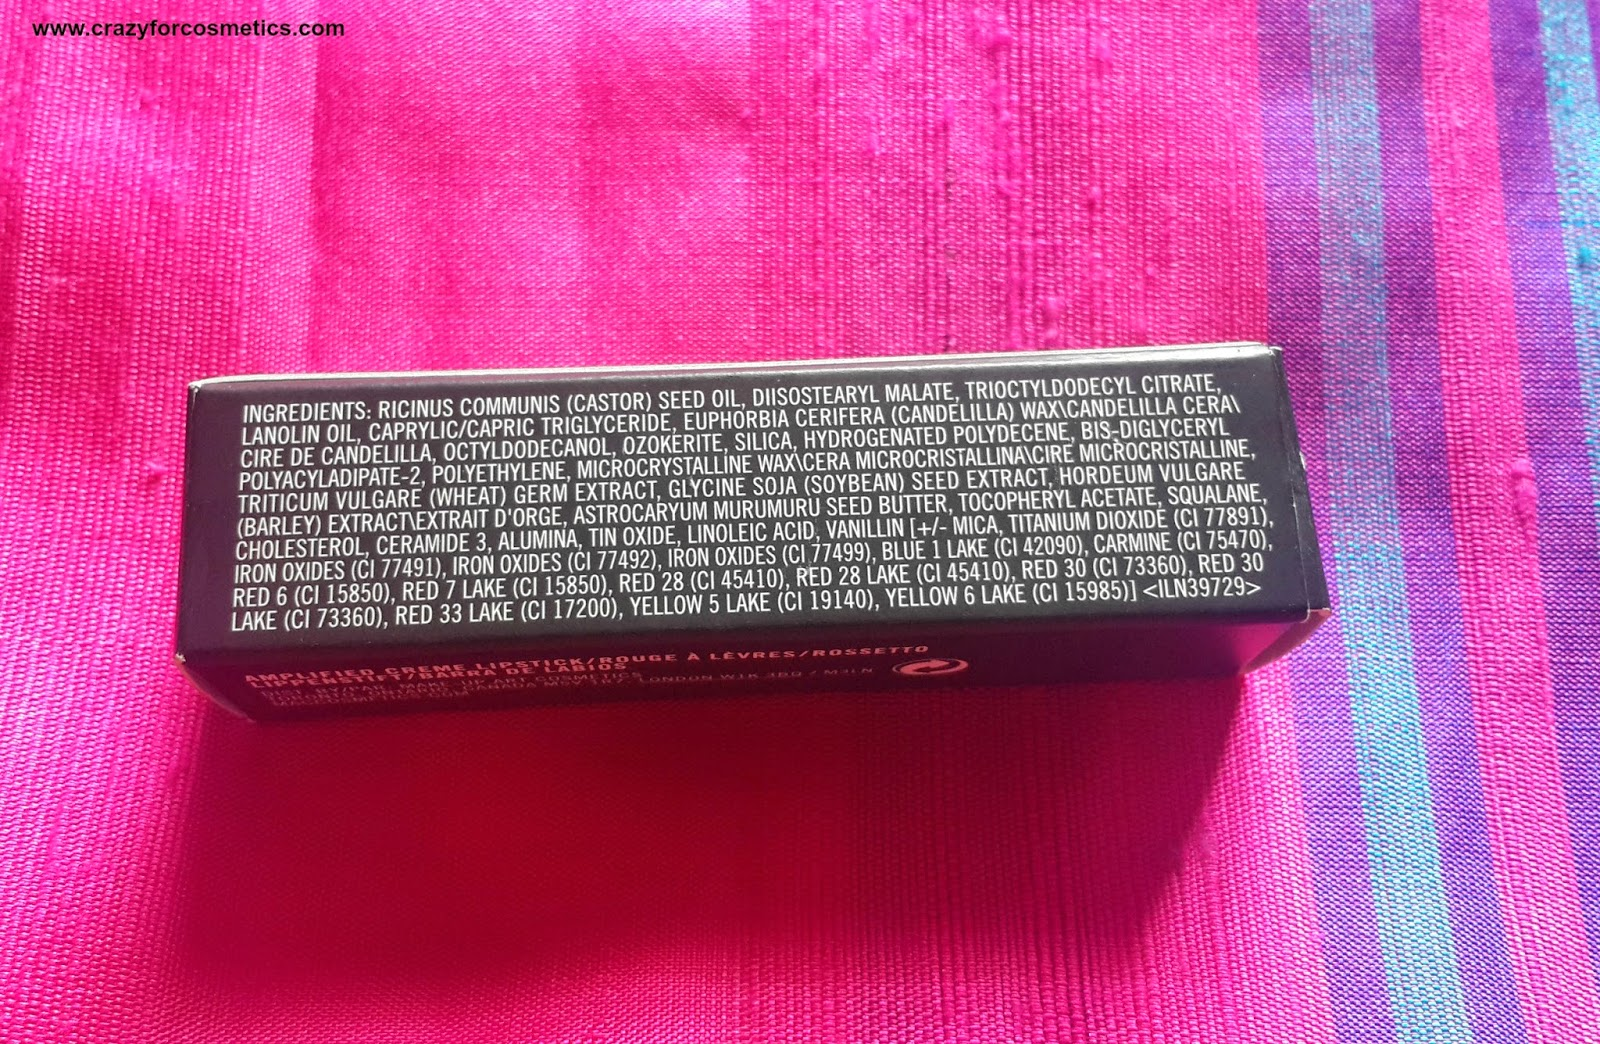 mac impassioned lipstick ingredients